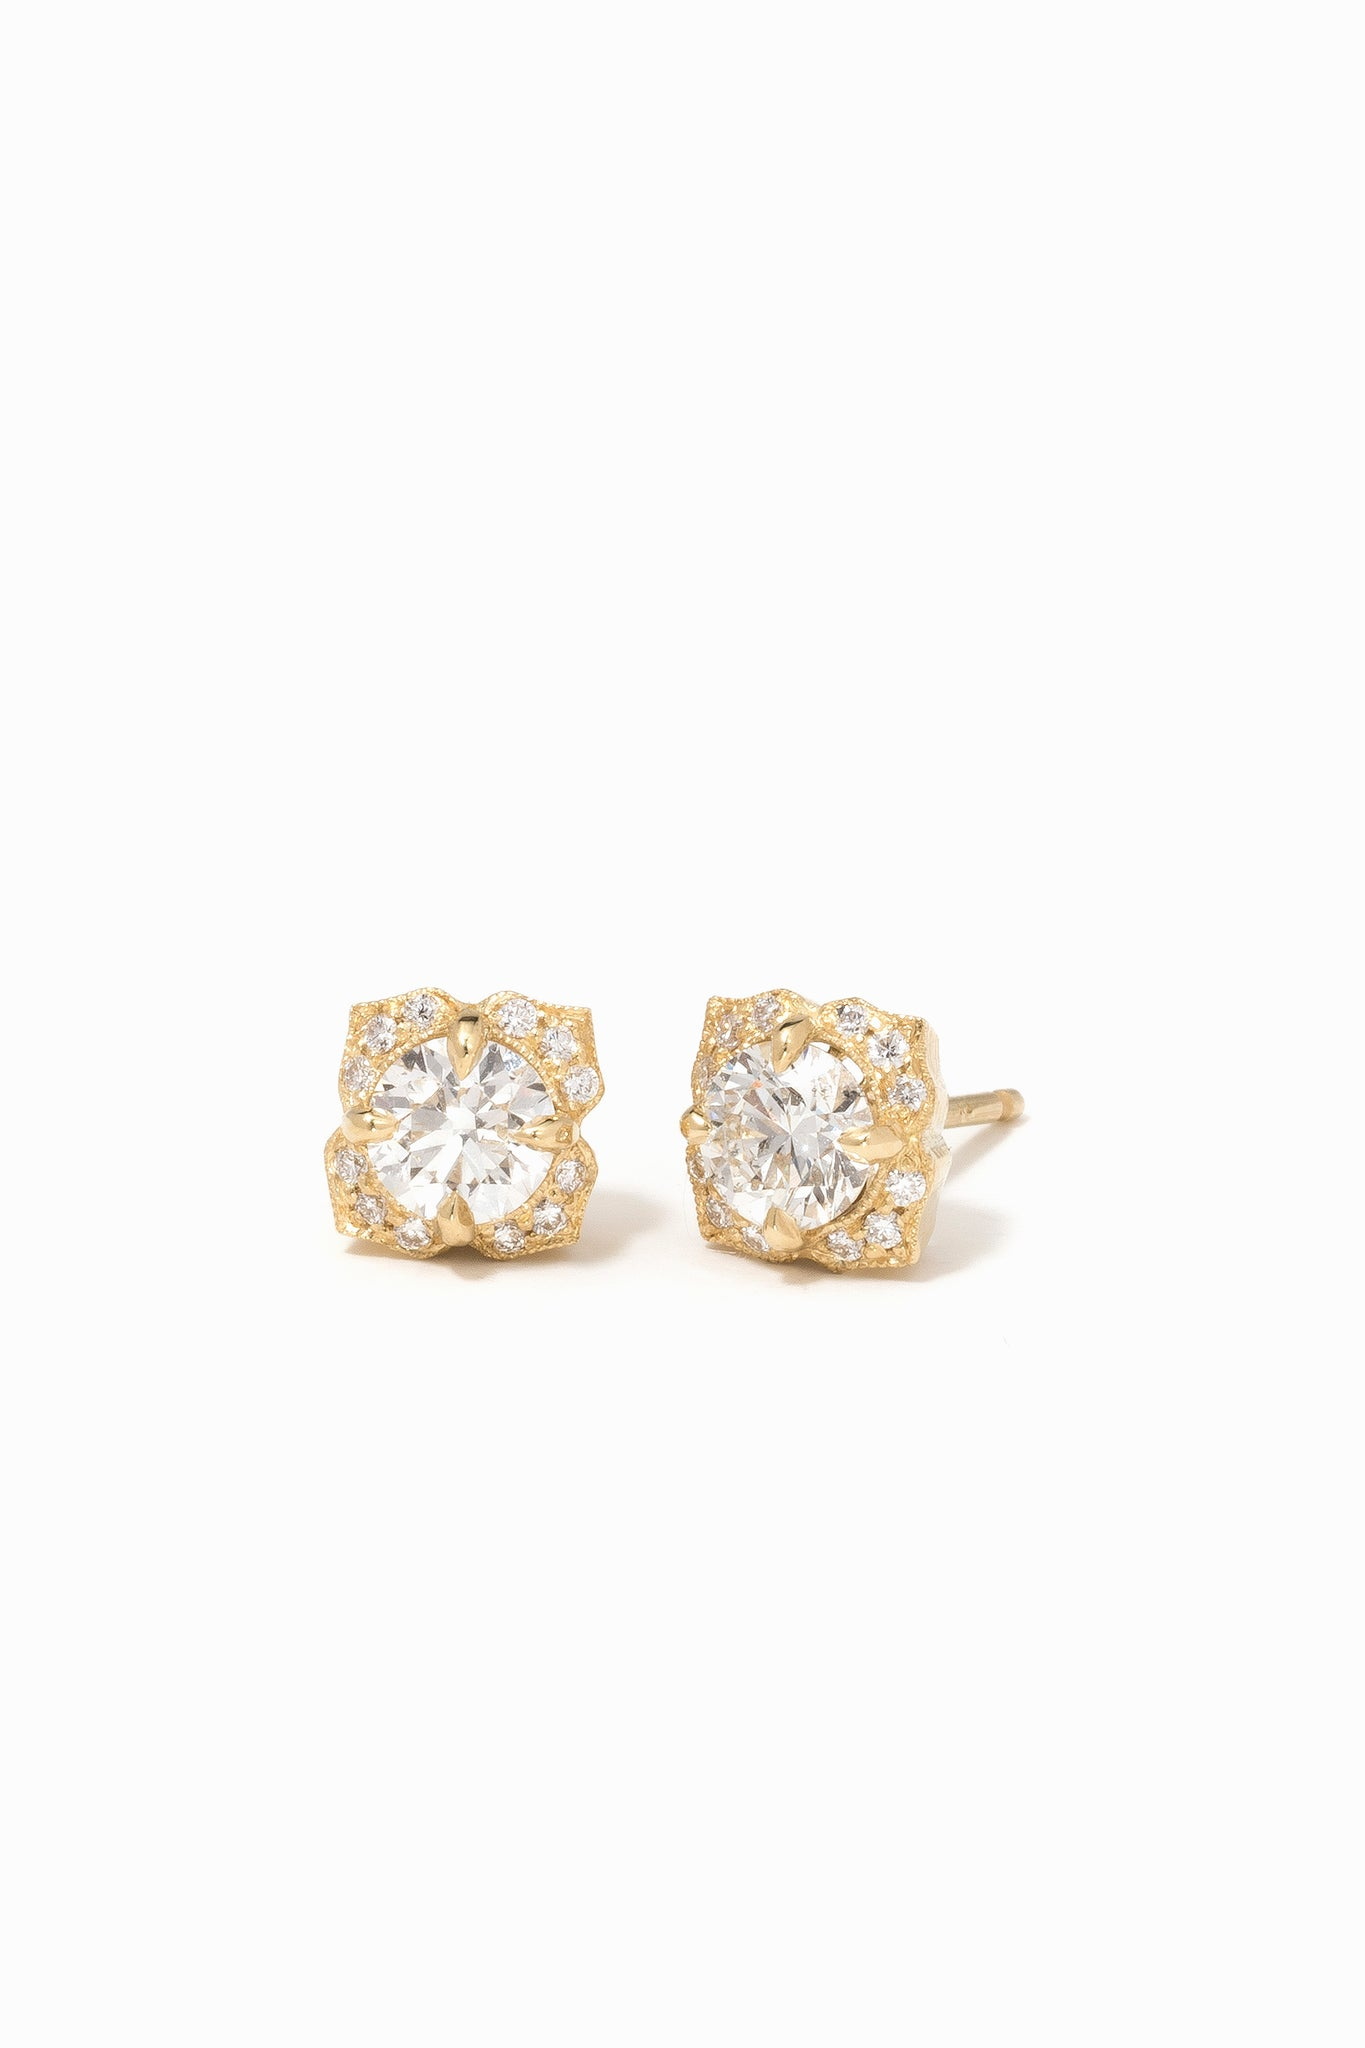 Petite Fiore Earrings